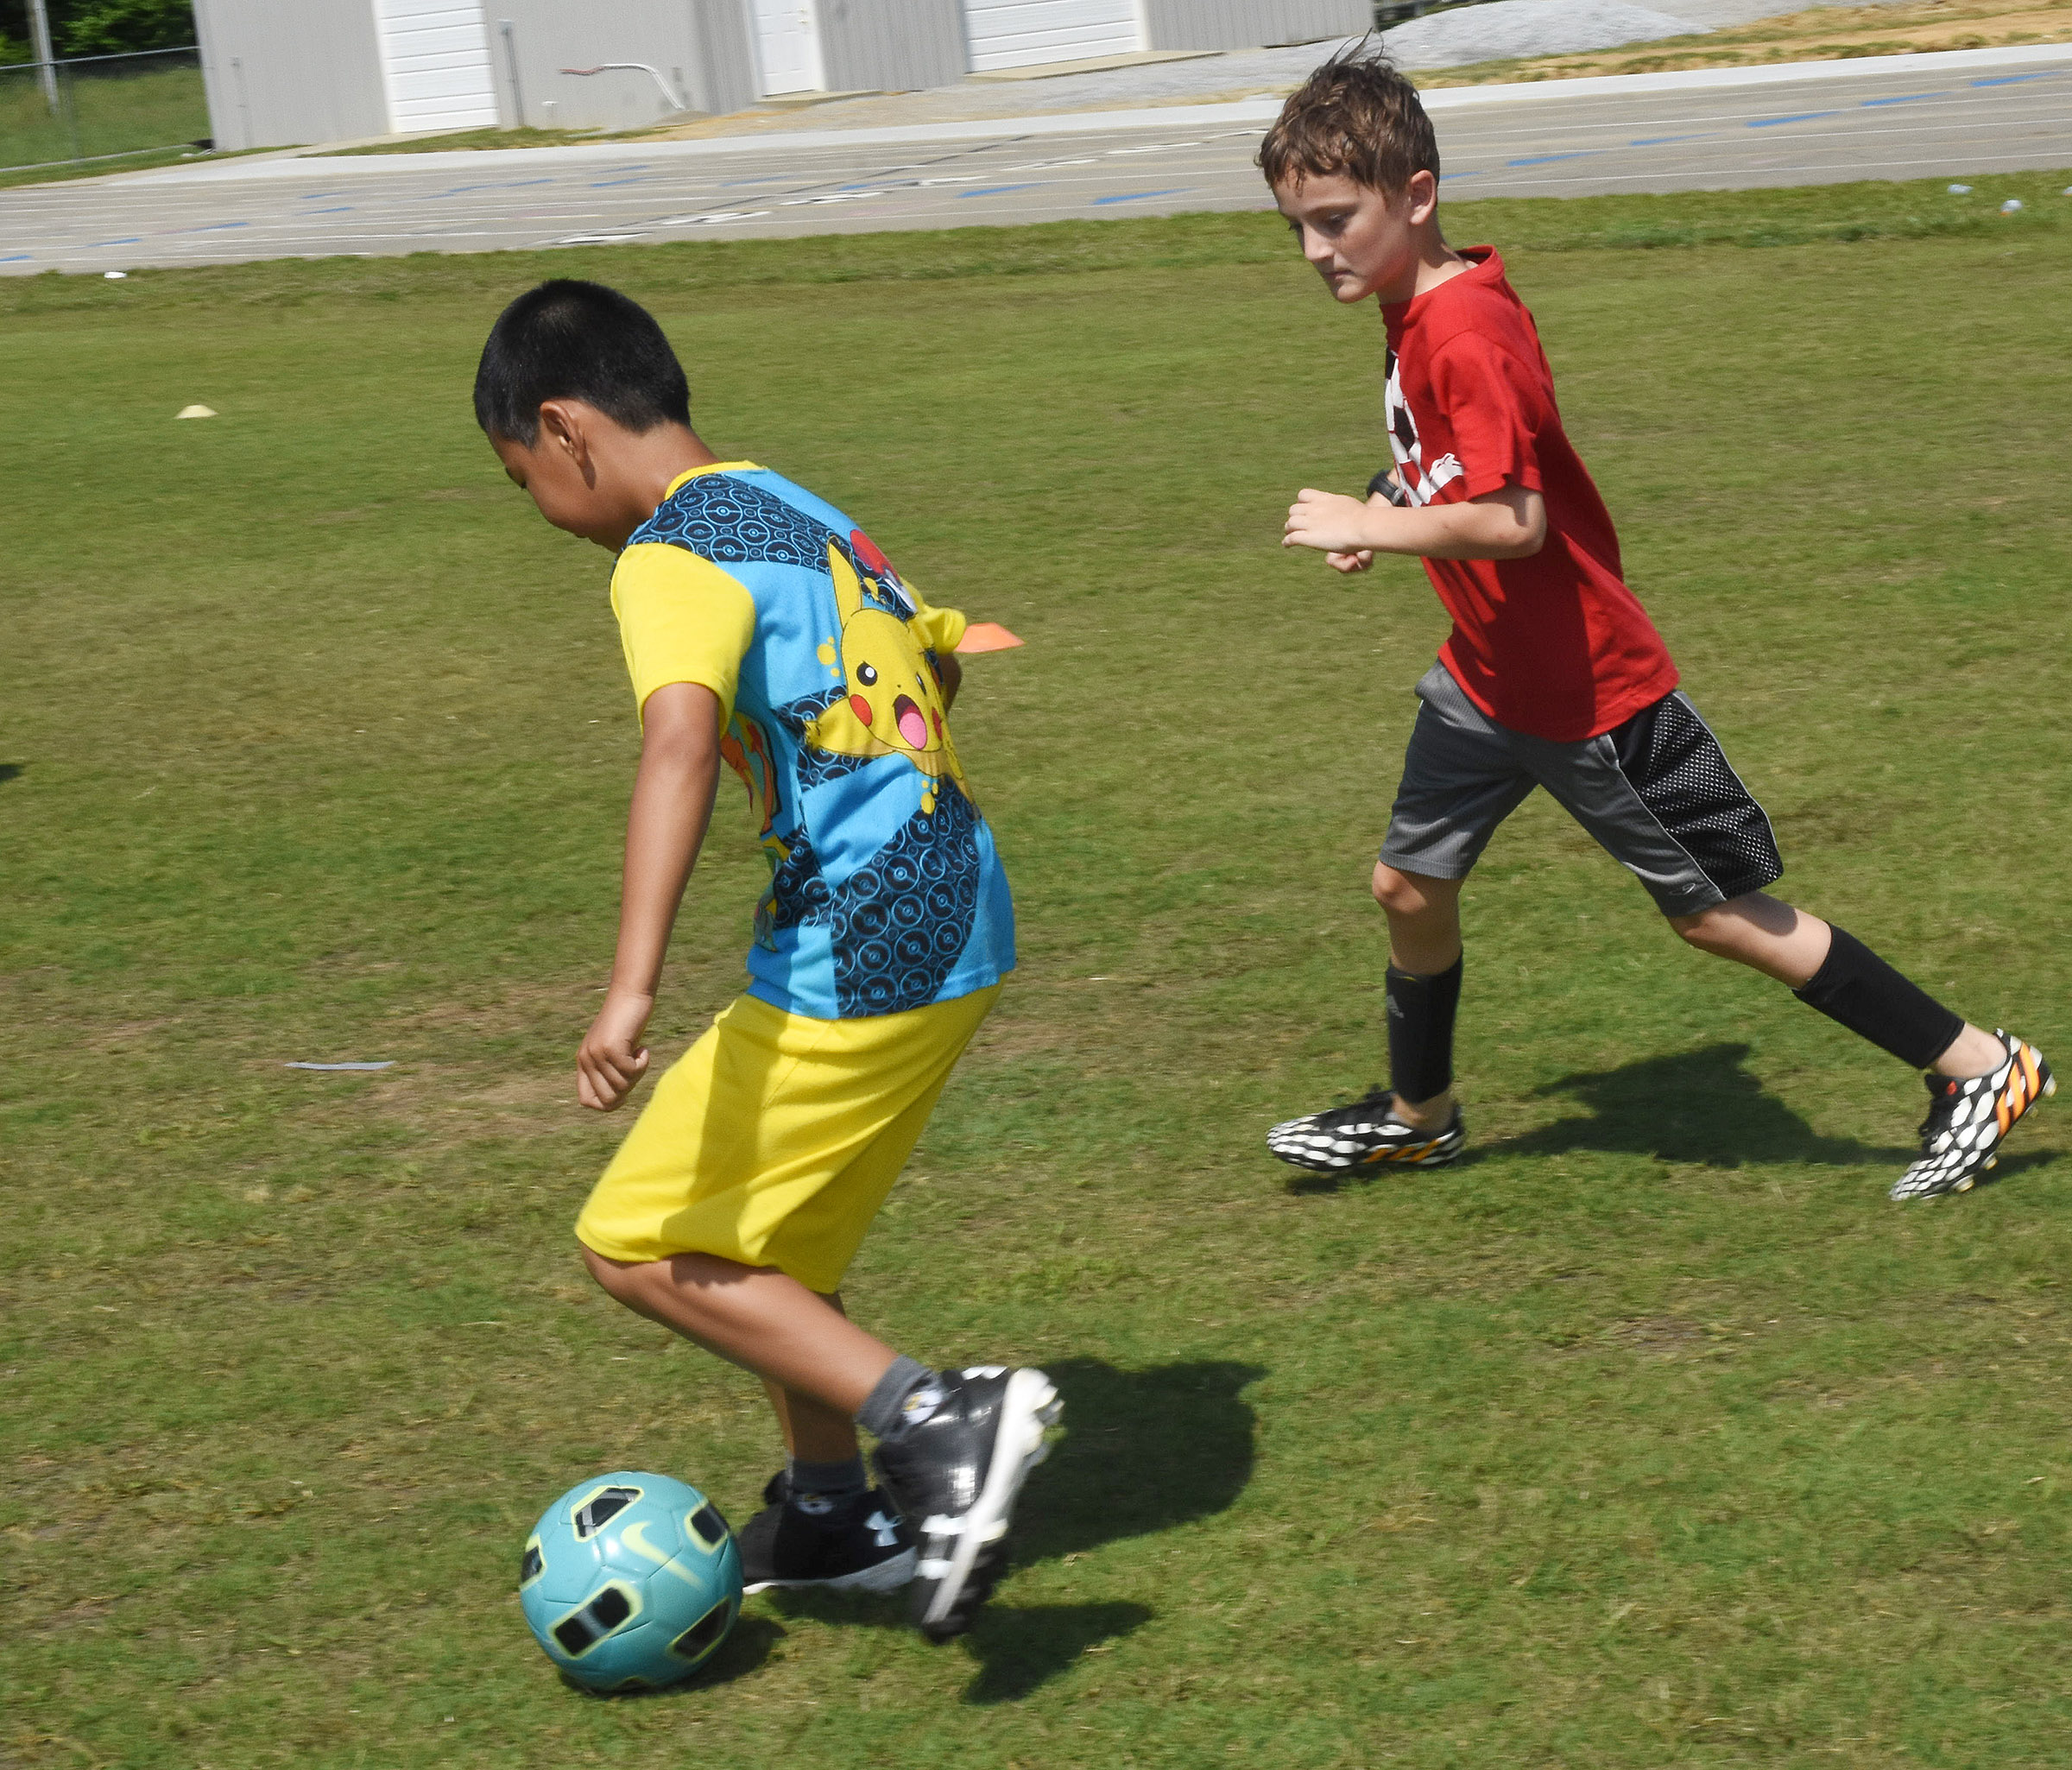 Campbellsville Elementary School fourth-grader Alfie Su, at left, and CES fifth-grader Noah Leachman compete for the ball.